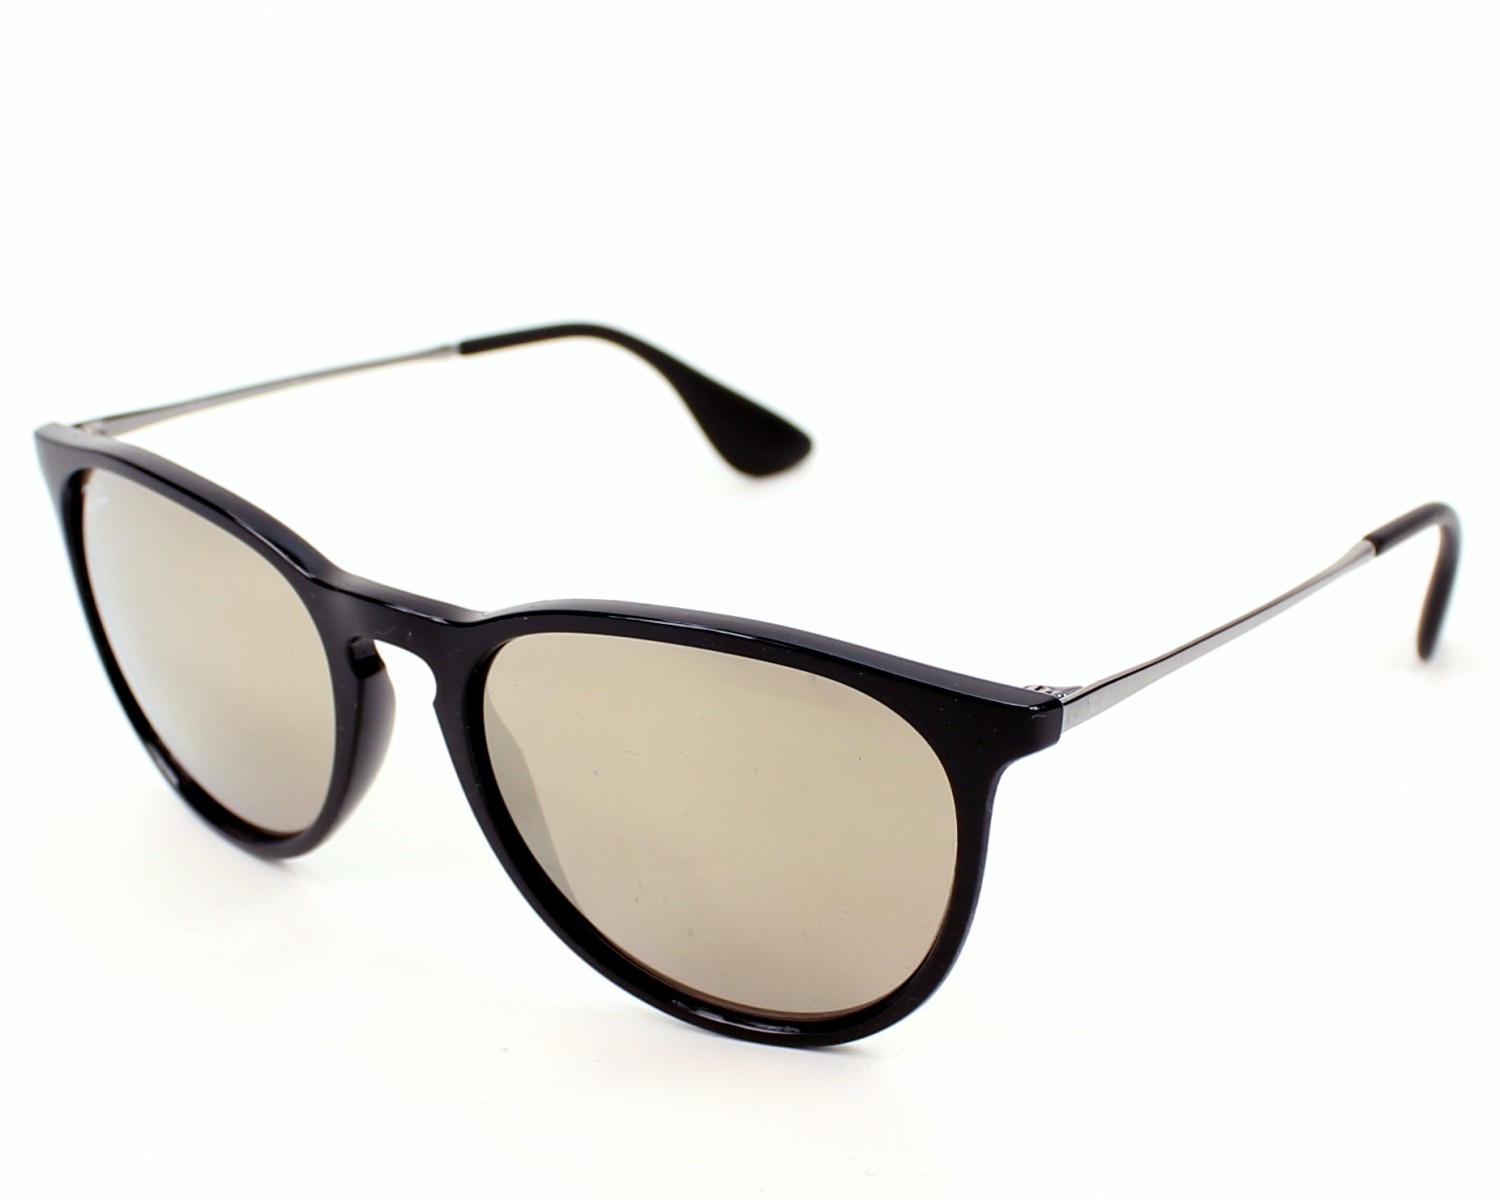 Ray-Ban Black Friday Deals Don't miss out on Black Friday discounts, sales, promo codes, coupons, and more from Ray-Ban! Check here for any early-bird specials and the official Ray-Ban sale. Don't forget to check for any Black Friday free shipping offers!5/5(17).